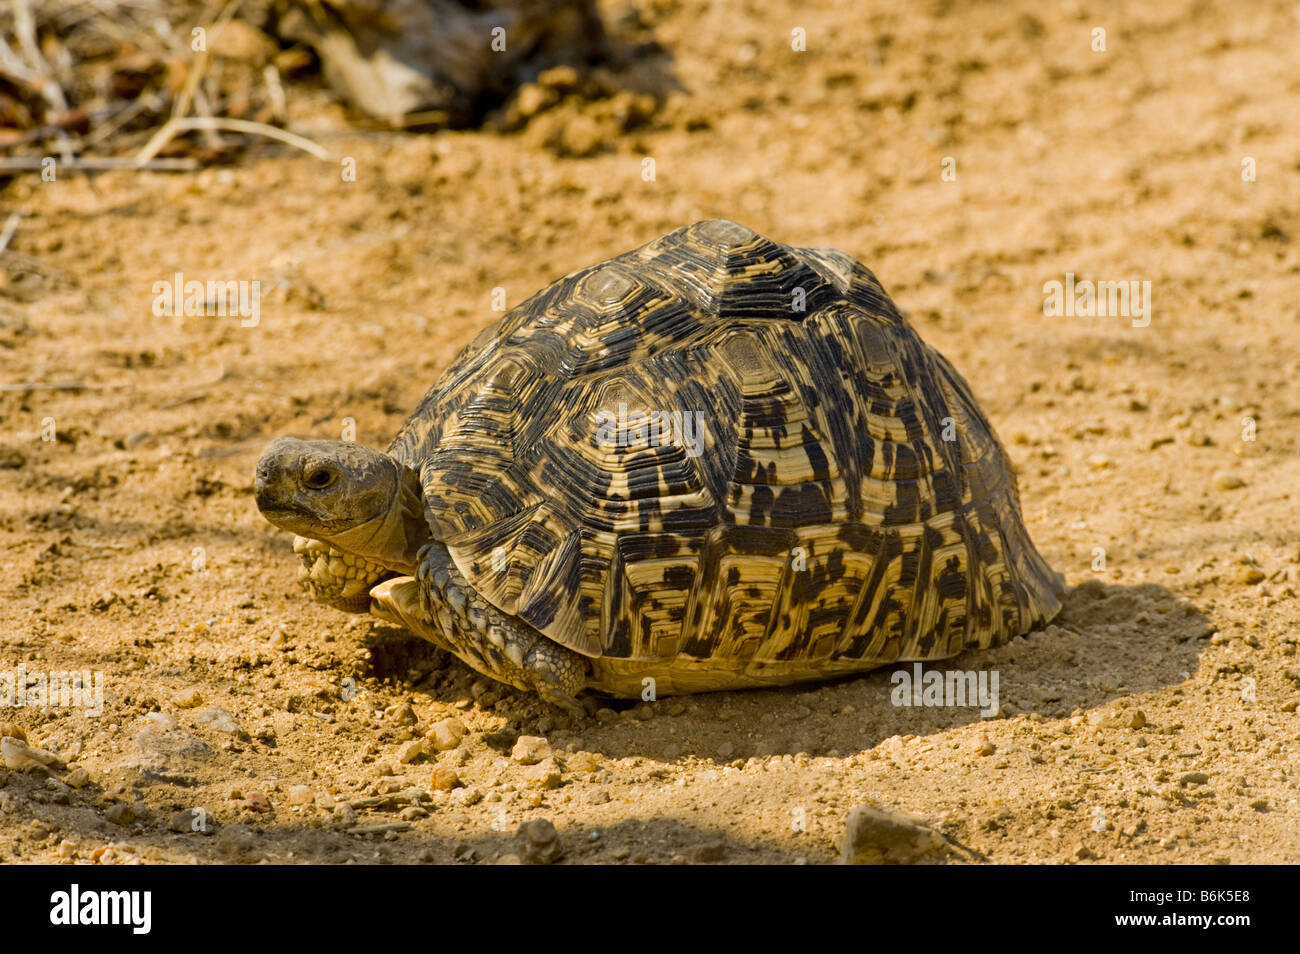 wild wildlife Leopard tortoise GEOCHELONE PARDALIS reptile turtle land tortuga species endemic animal old big heavy - Stock Image